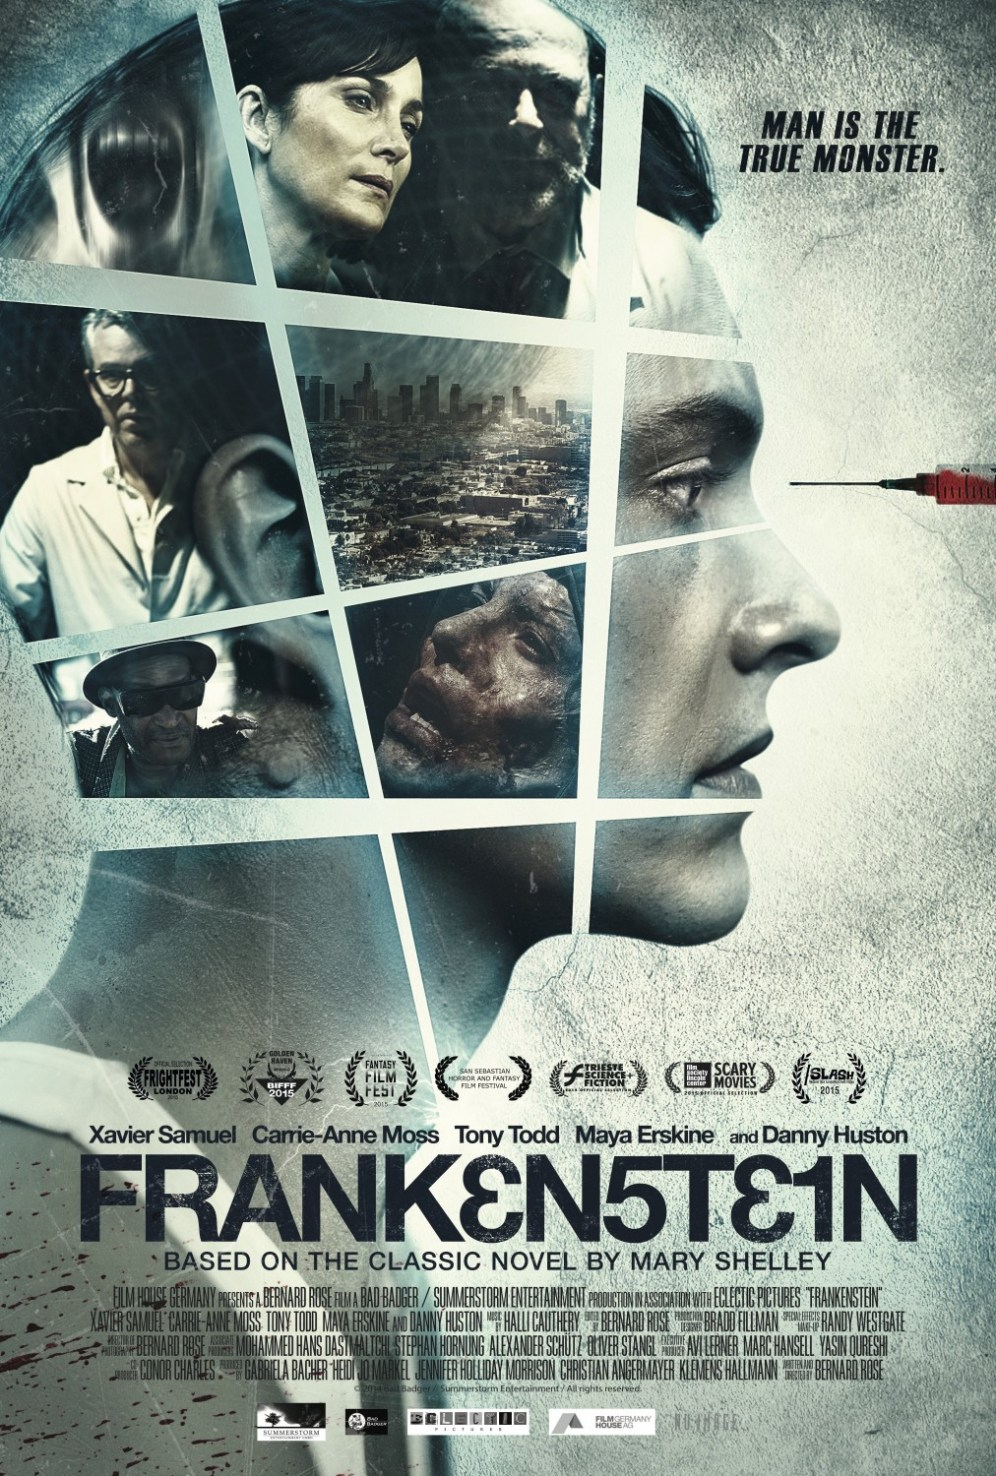 frankenstein the true monster The origins, themes and continuing legacy of mary shelley's gothic tale frankenstein.